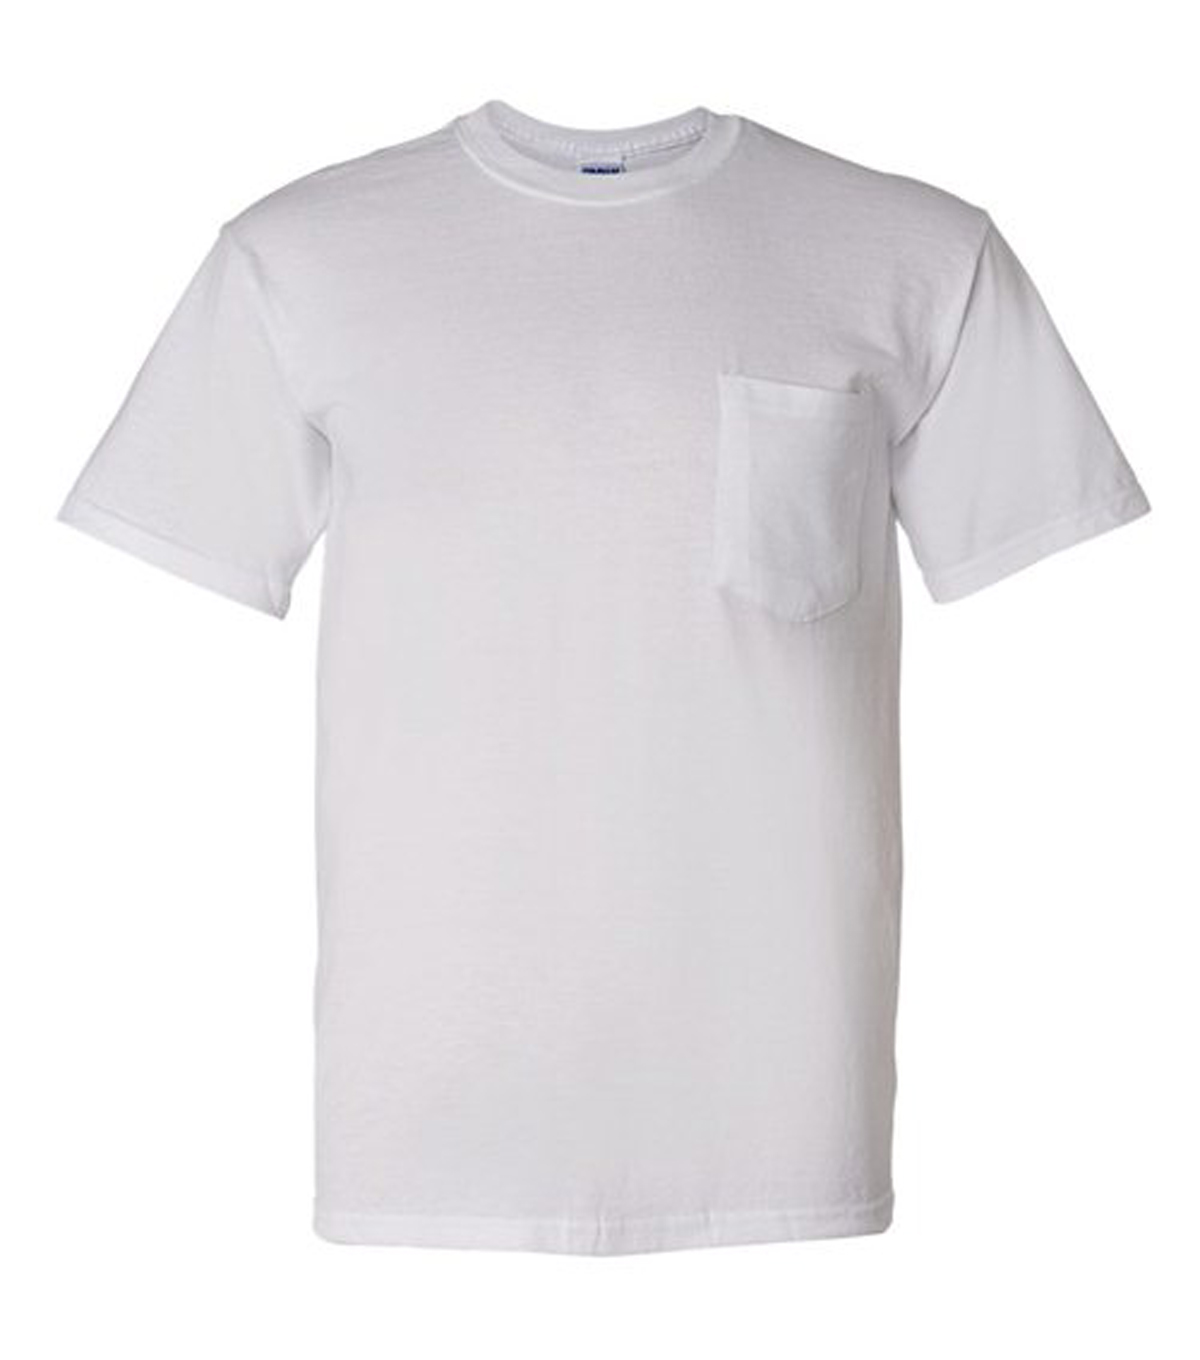 Gildan Adult Pocket T-shirt Small